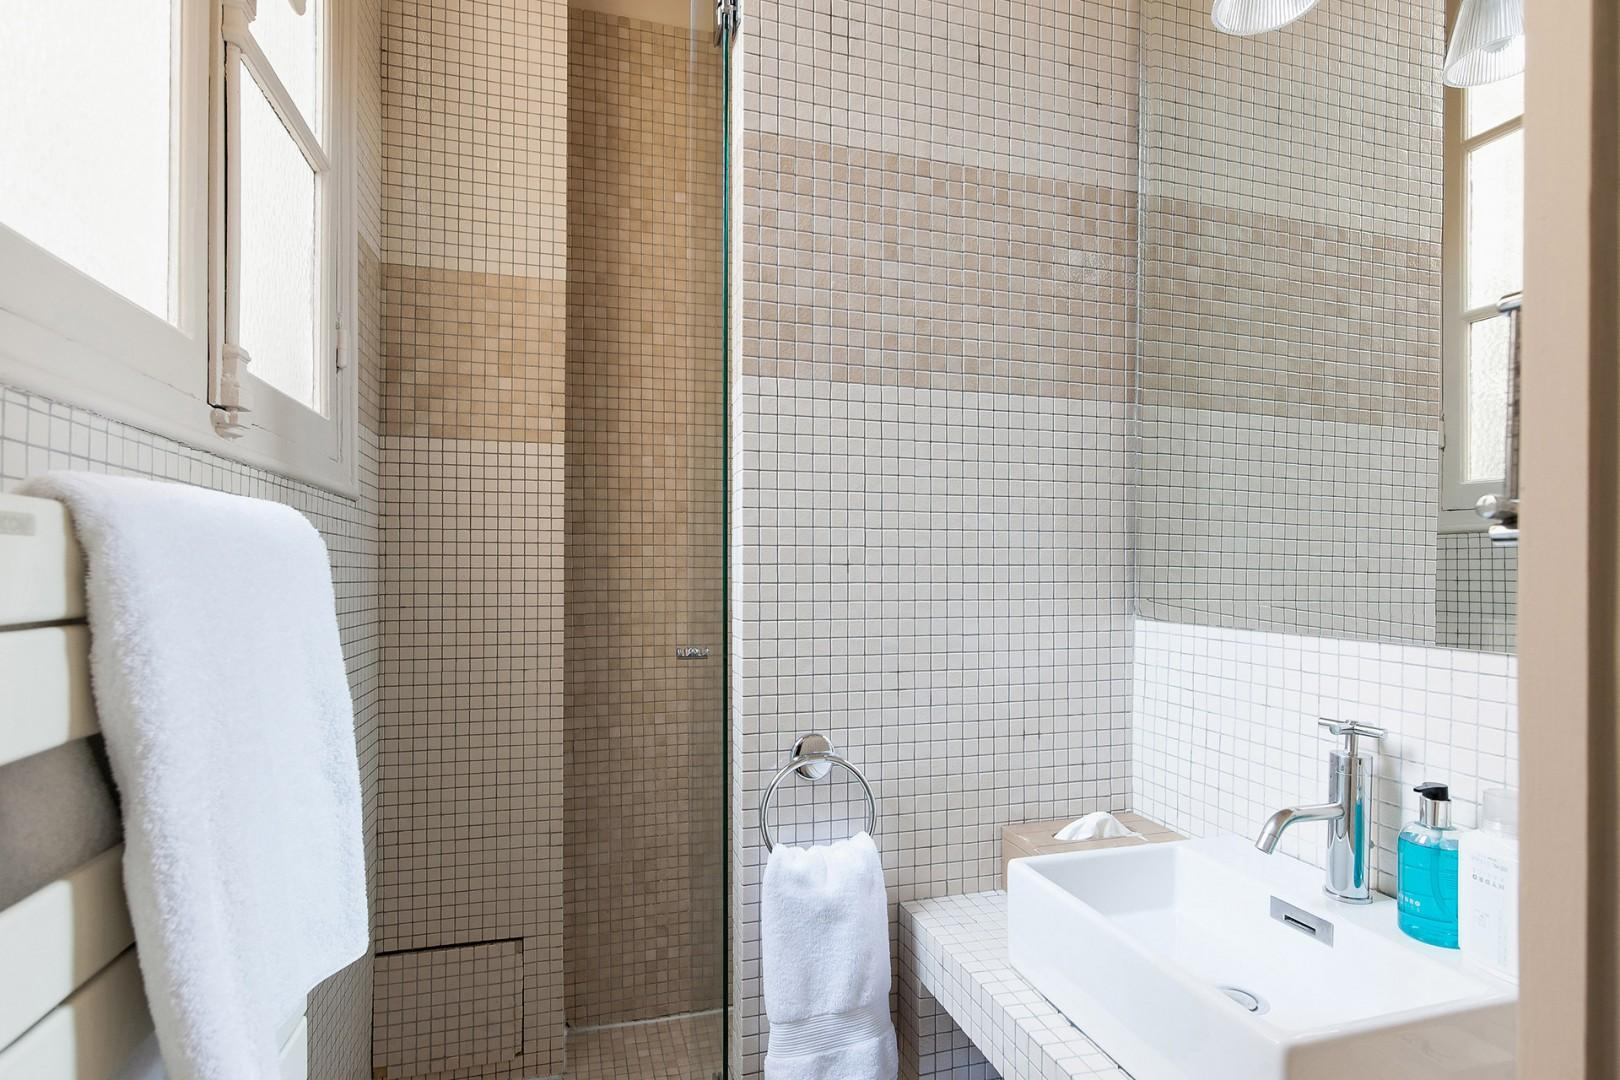 Bathroom 2 is equipped with a shower, sink and heated towel racks.